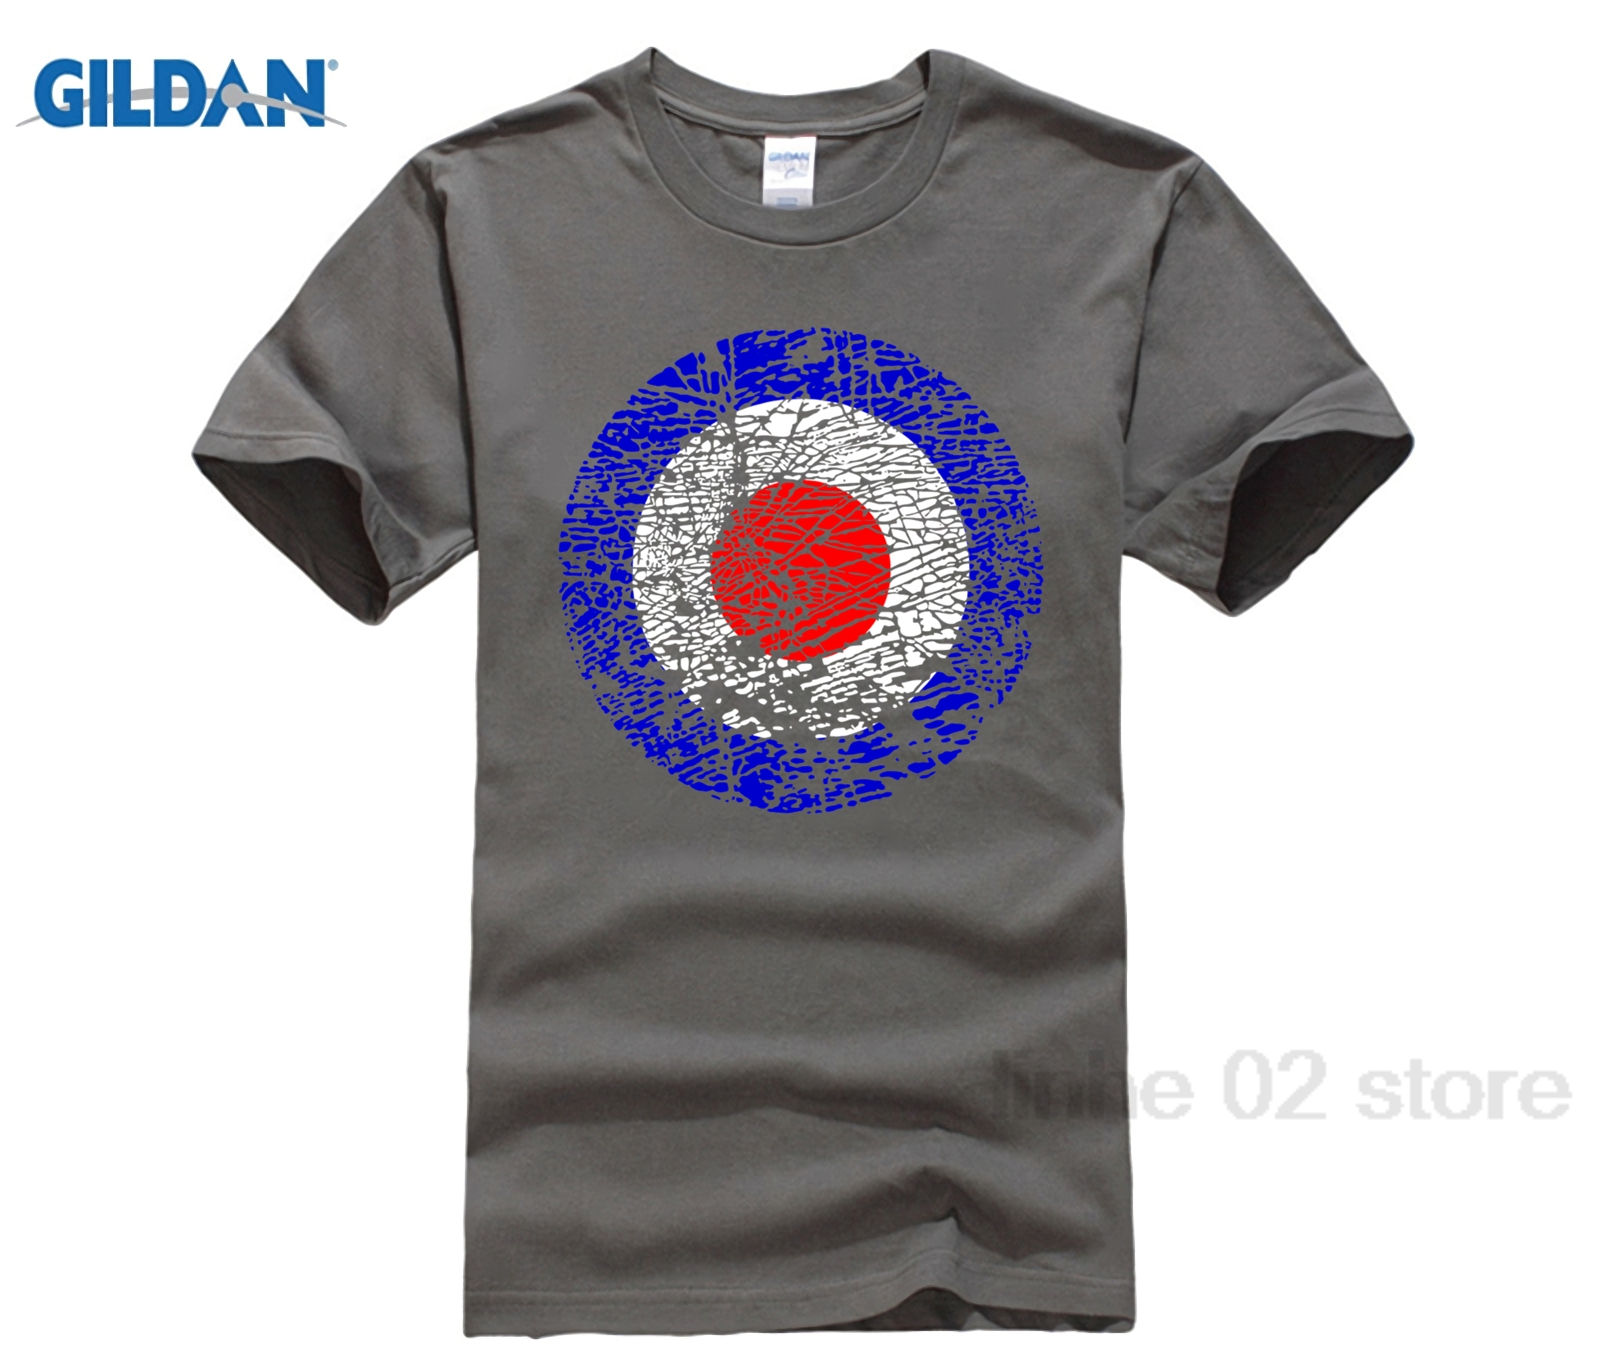 GILDAN Vintage Distressed Mod Target Broken Glass Pop Art T-Shirt sunglasses women T-shi ...